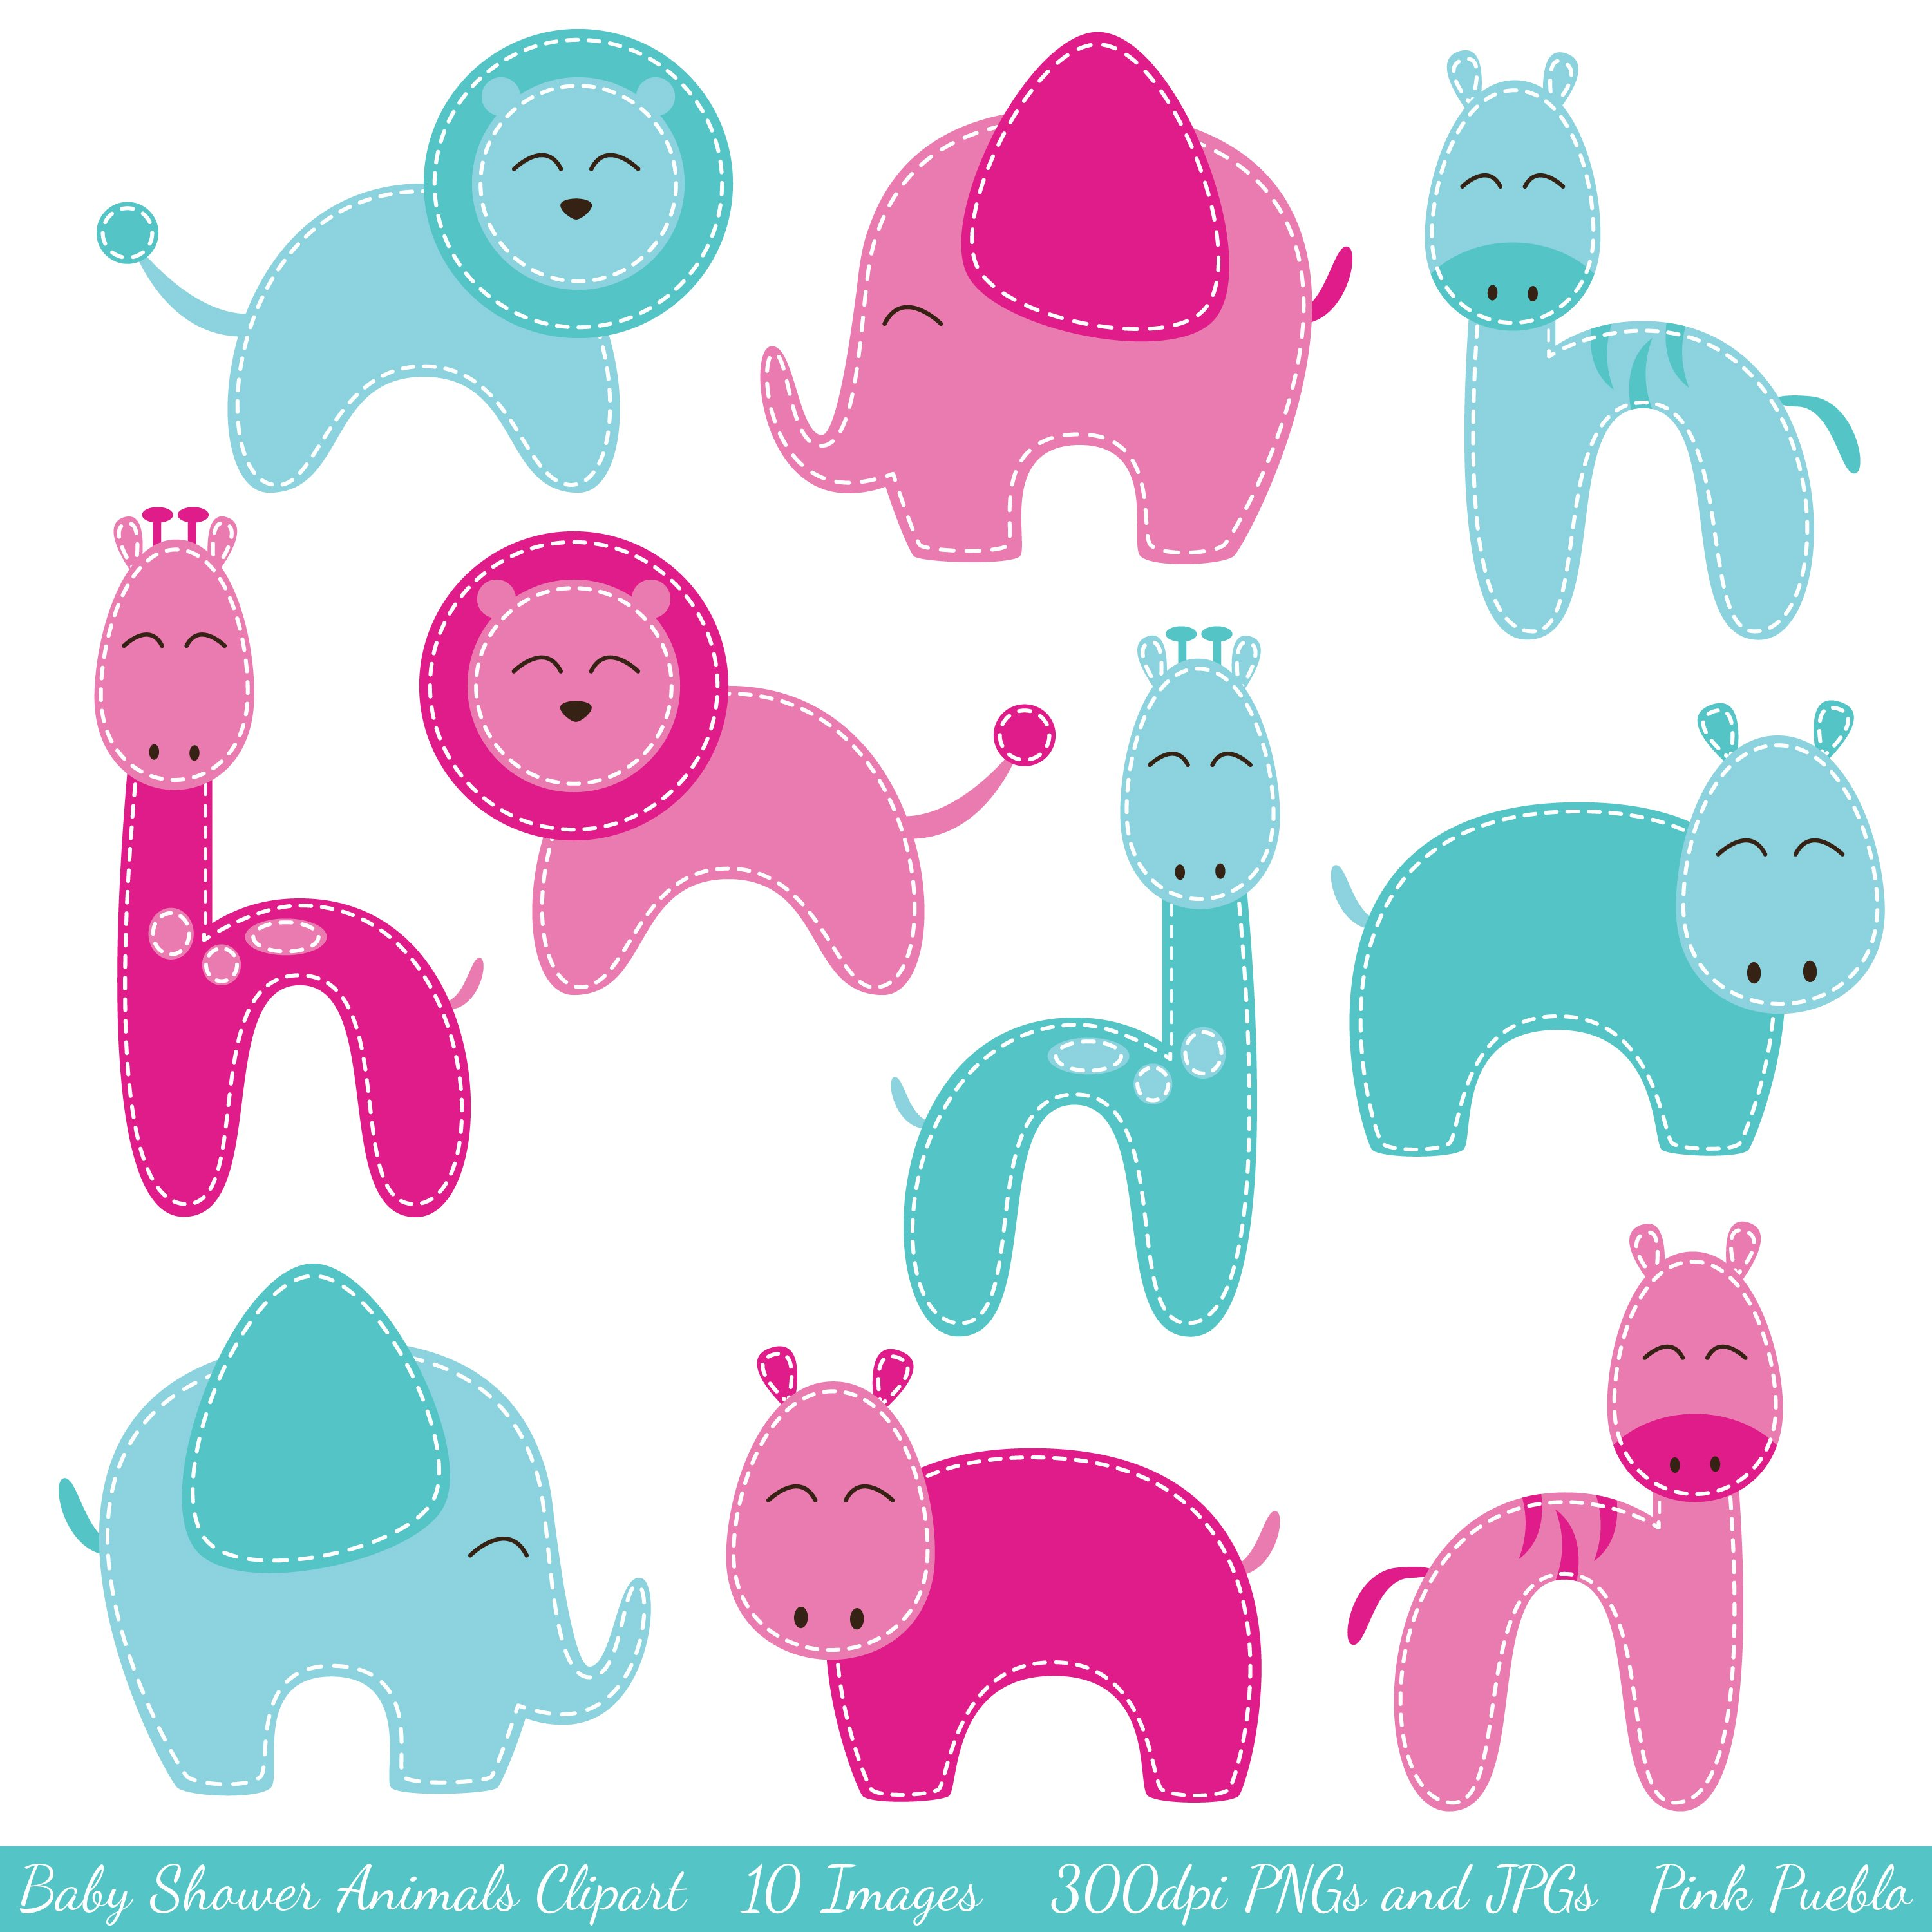 Baby Shower Animal Vectors Clipart Illustrations Creative Market